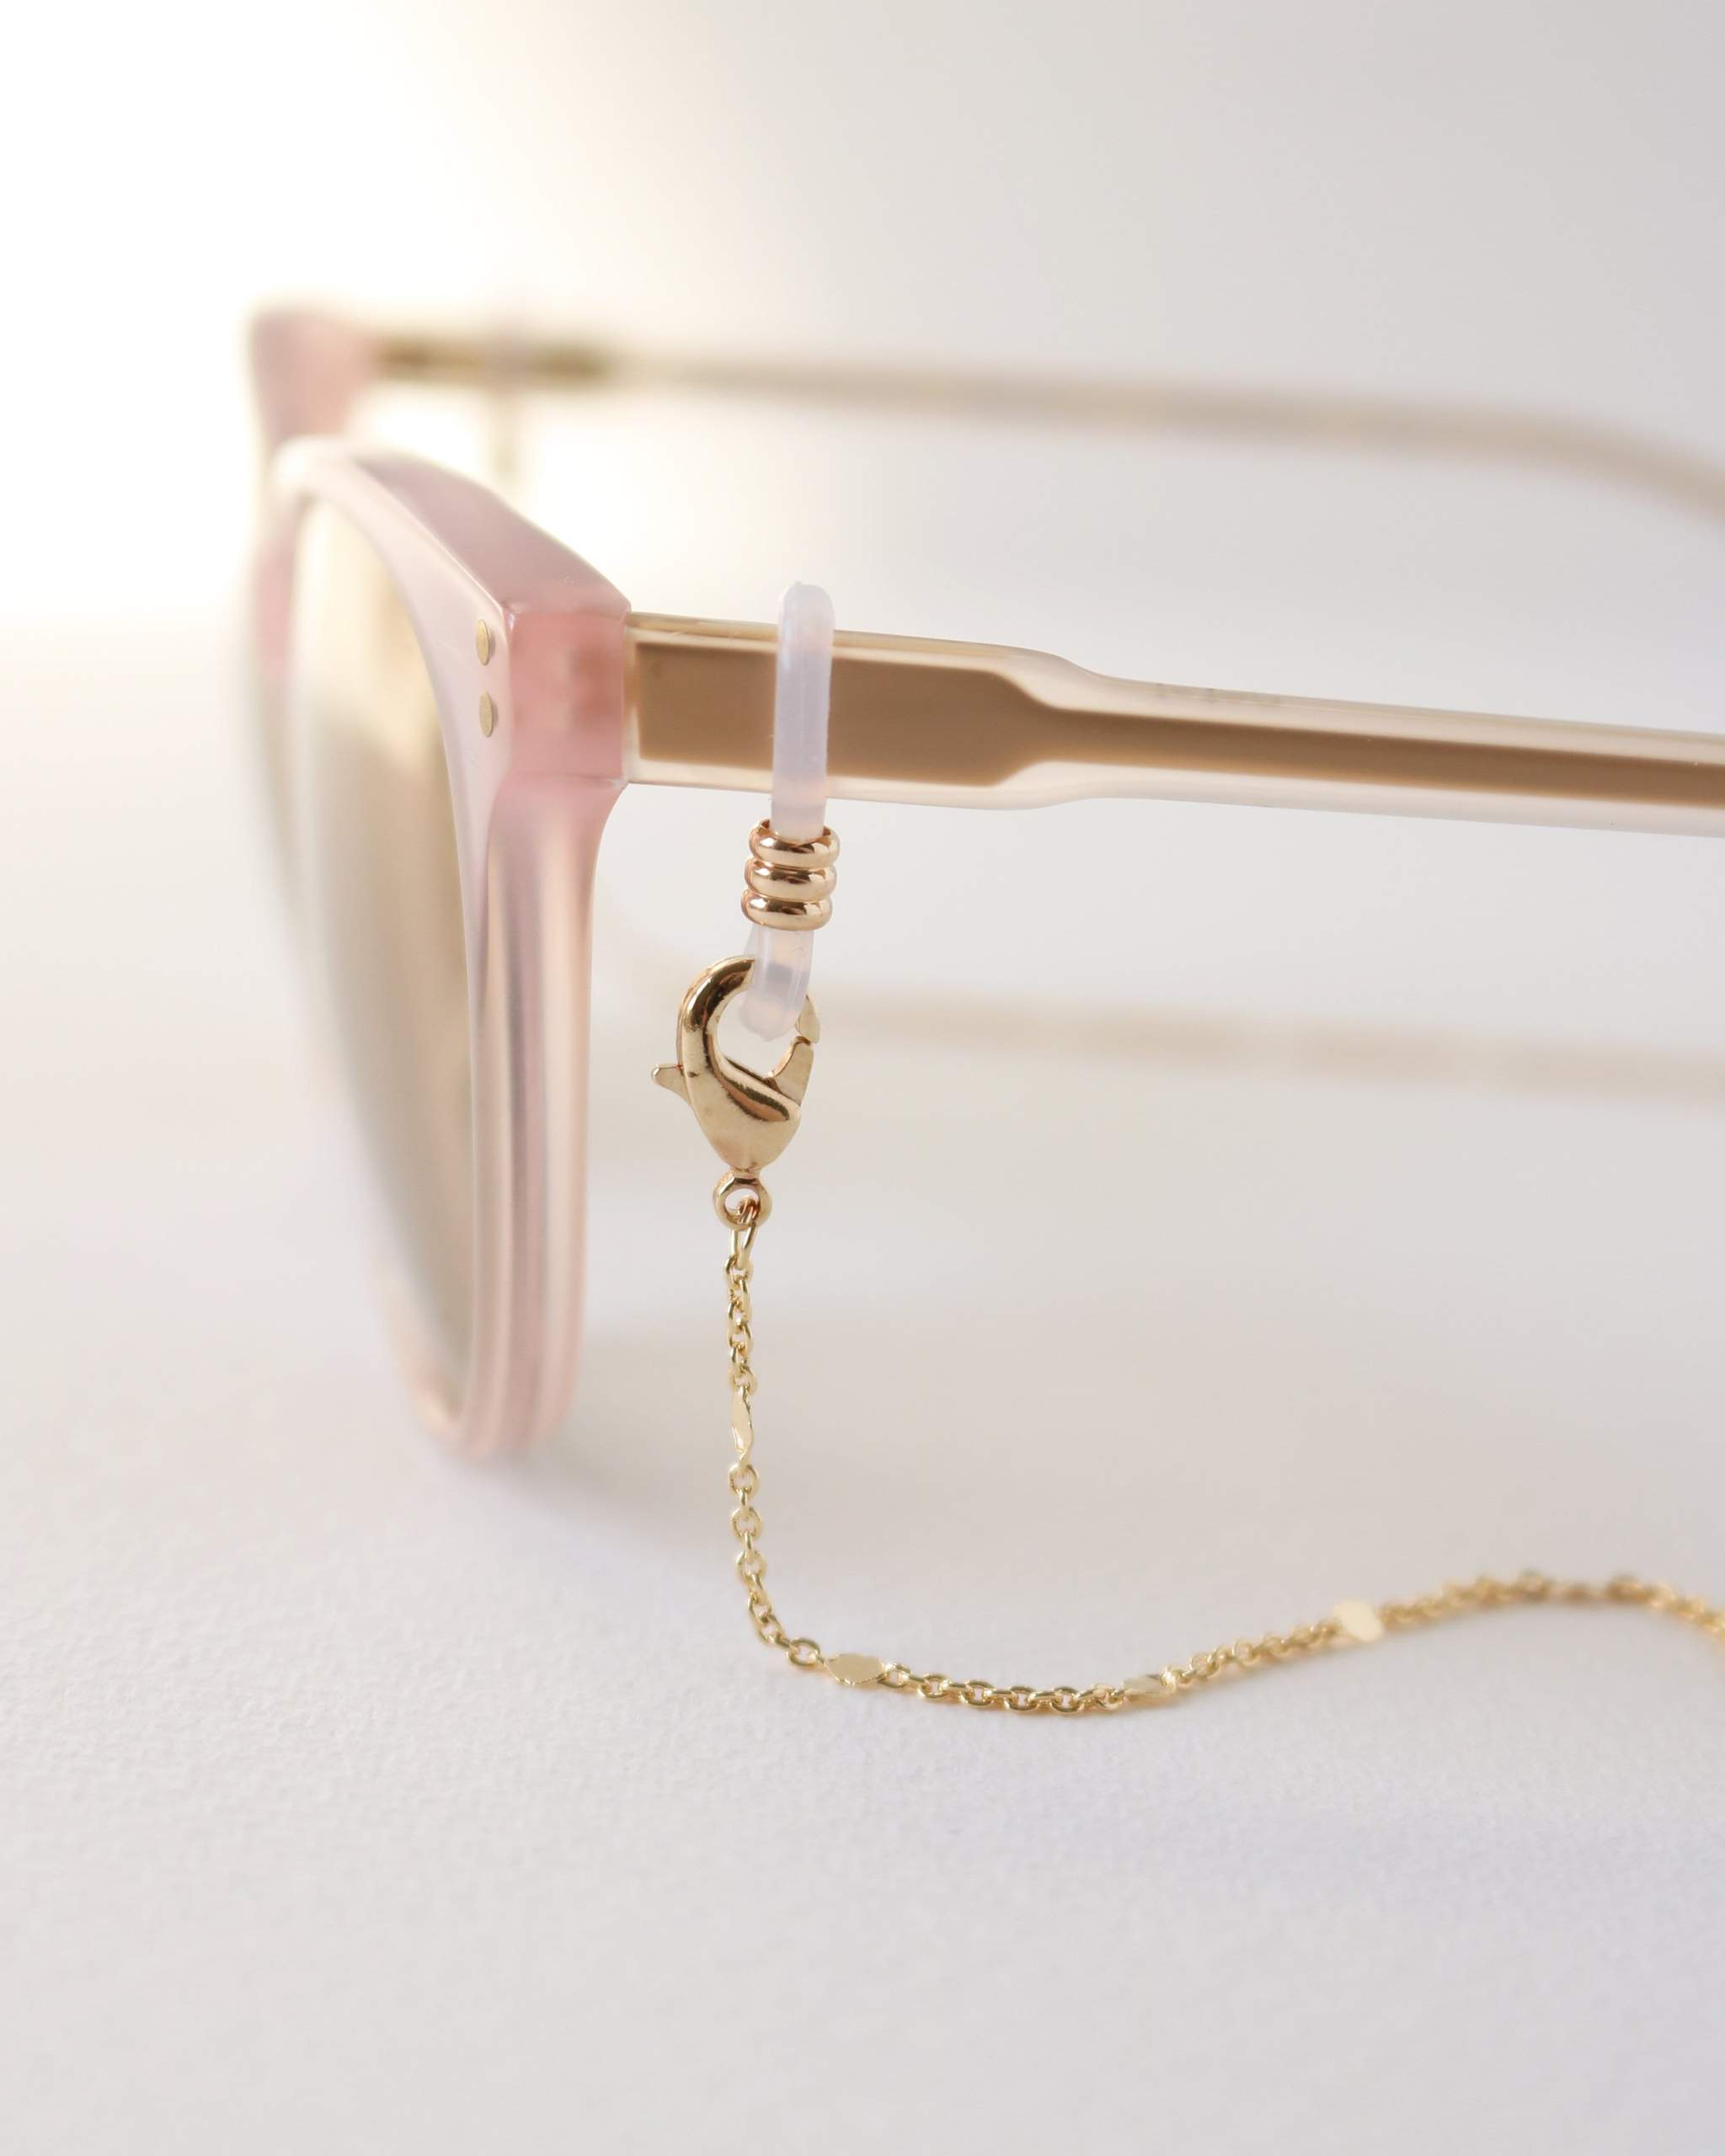 LOVER'S TEMPO - EVERLY CONVERTIBLE GLASSES/ MASK CHAIN IN GOLD